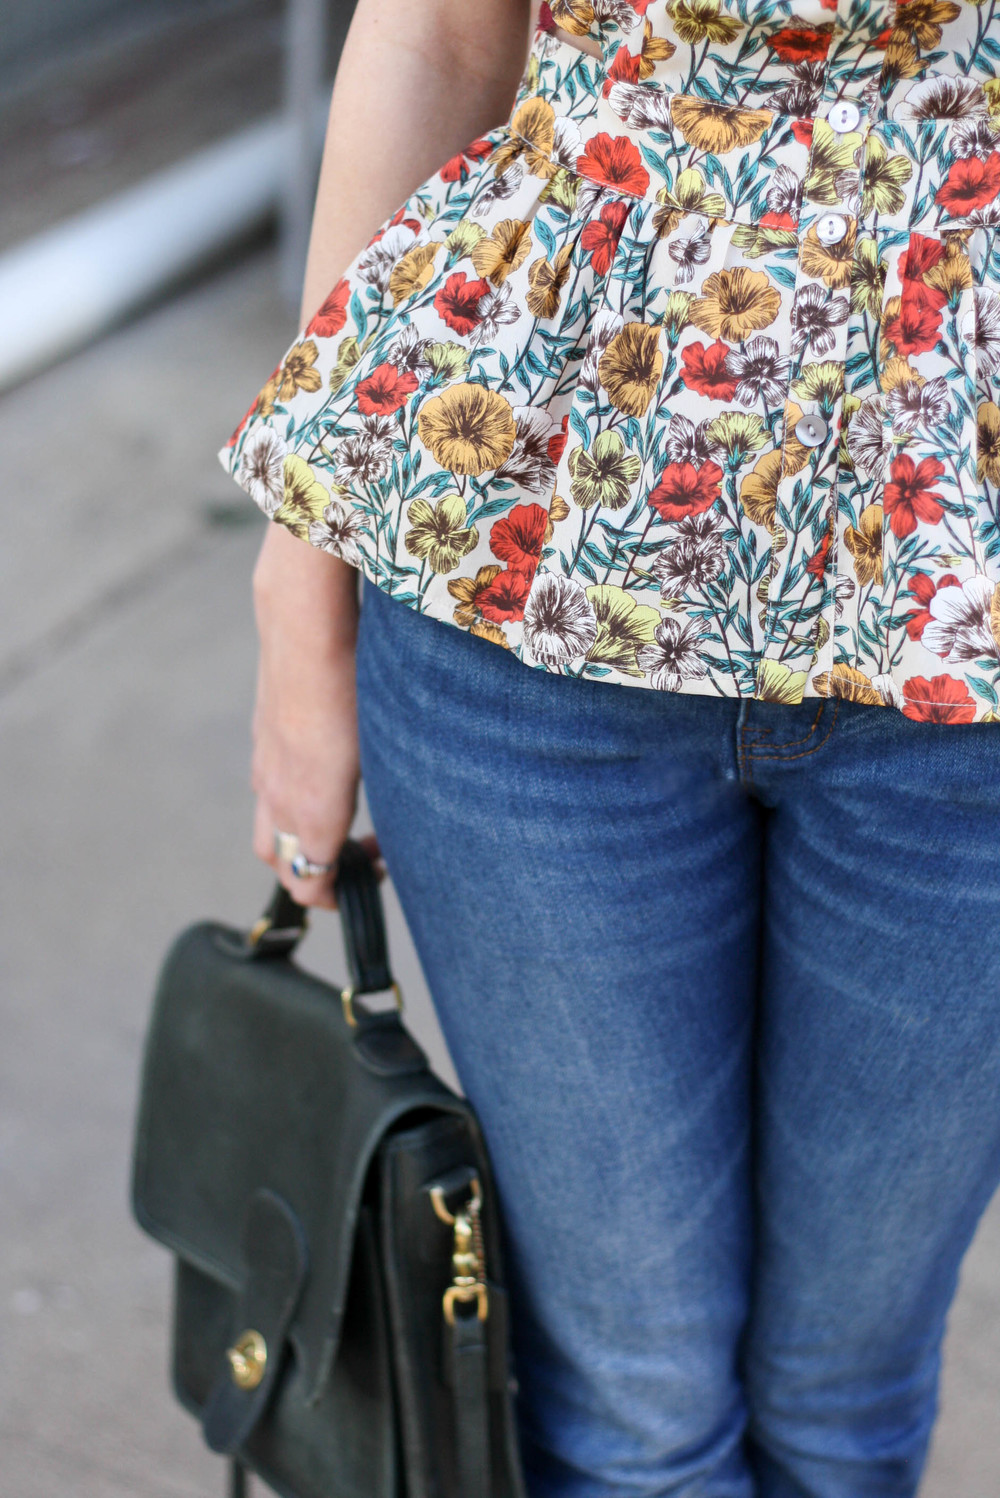 Peplum floral blouse: Forever 21 Jeans: Urban Outfitters Purse: Vintage Coach Buckle flats: Melissa Vivienne Westwood Necklace: Thrfited (Buffalo Exchange) Photographs by Morgan Williams